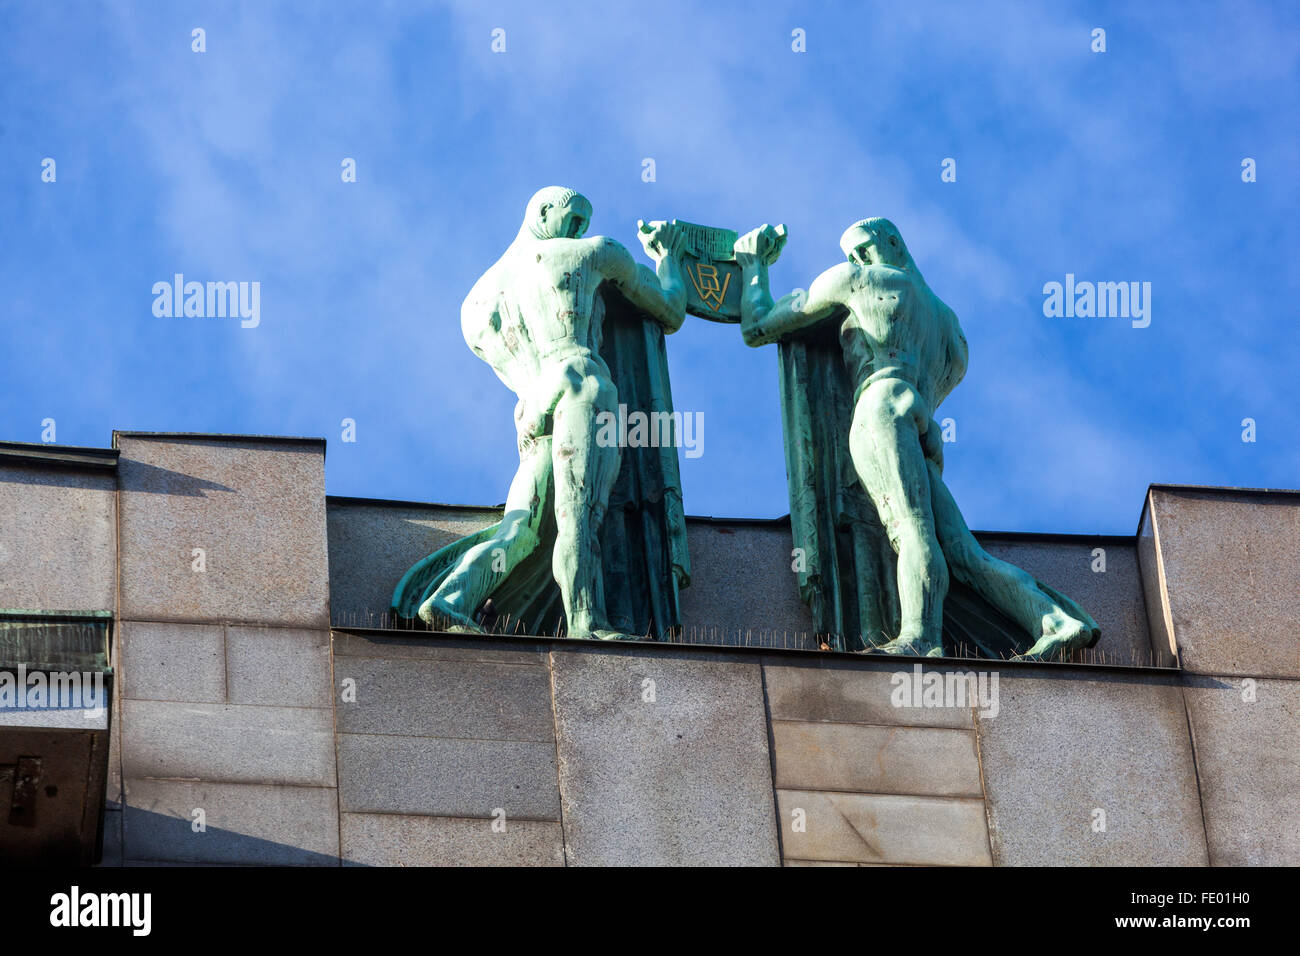 Art Nouveau sculptures on a rooftop in Na Prikope, Prague, Czech Republic, Europe - Stock Image